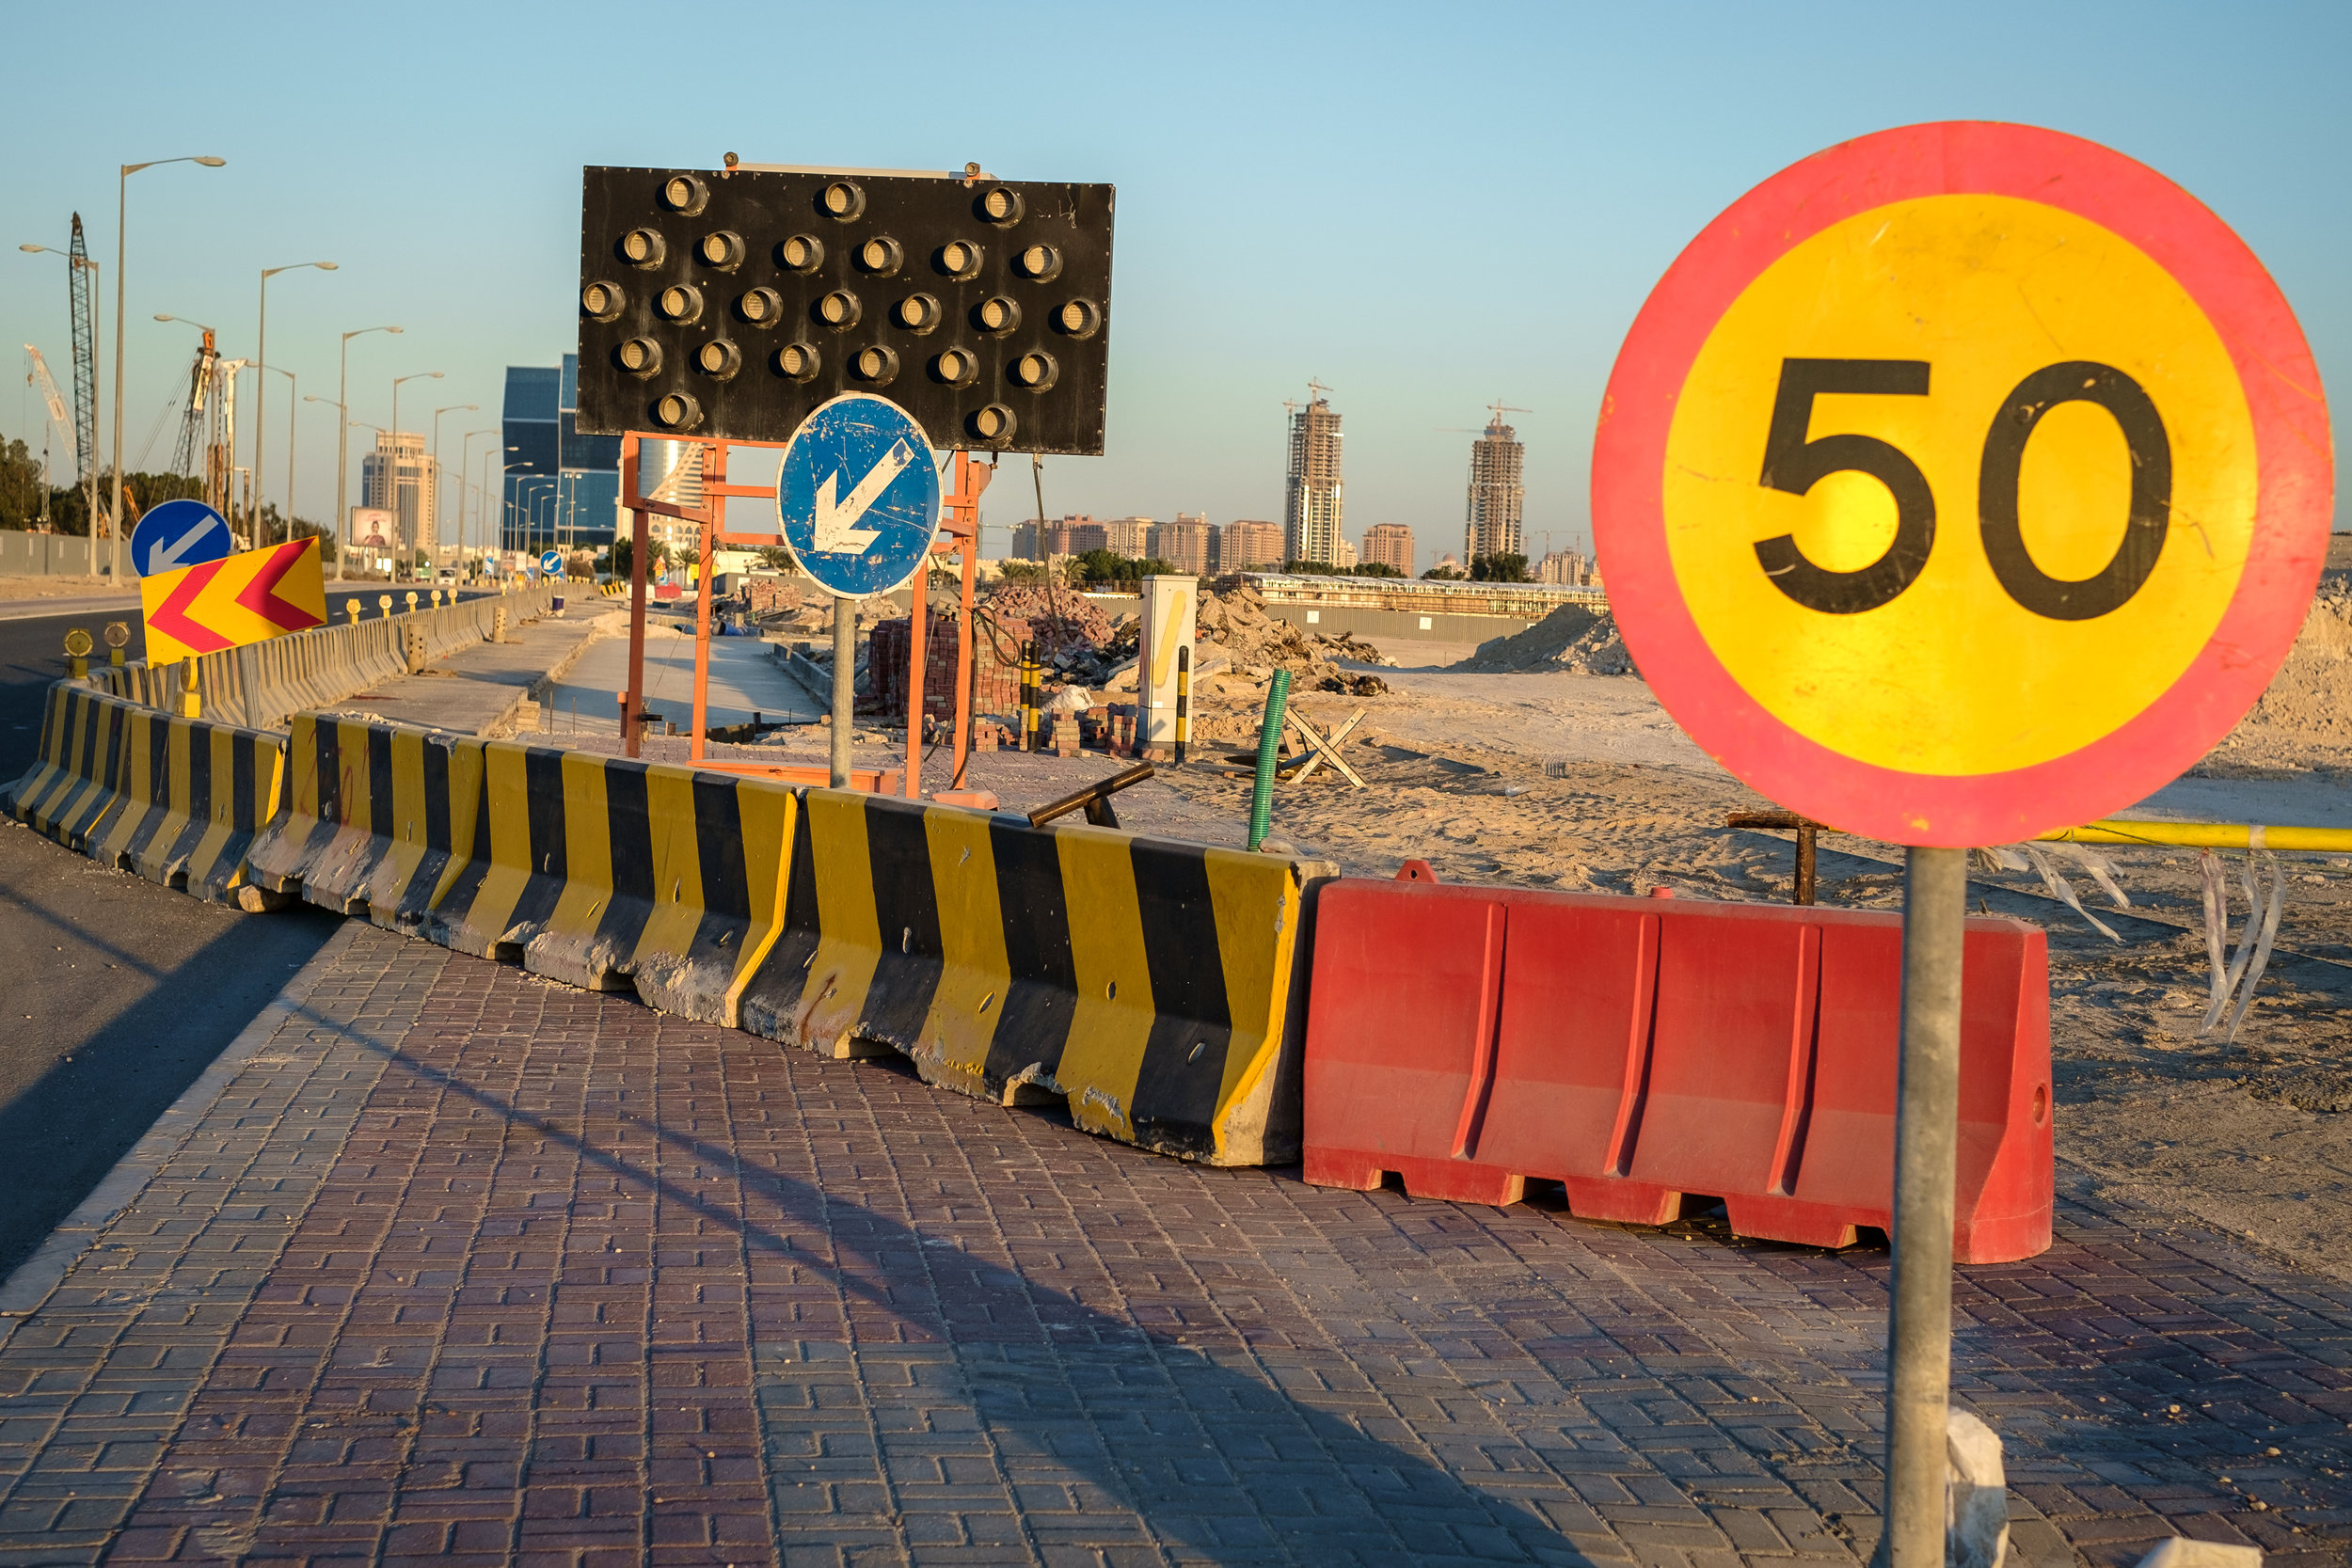 Living in Doha, means living in a veritable construction site. The landscape often changes as roads are laid and developments are realized.